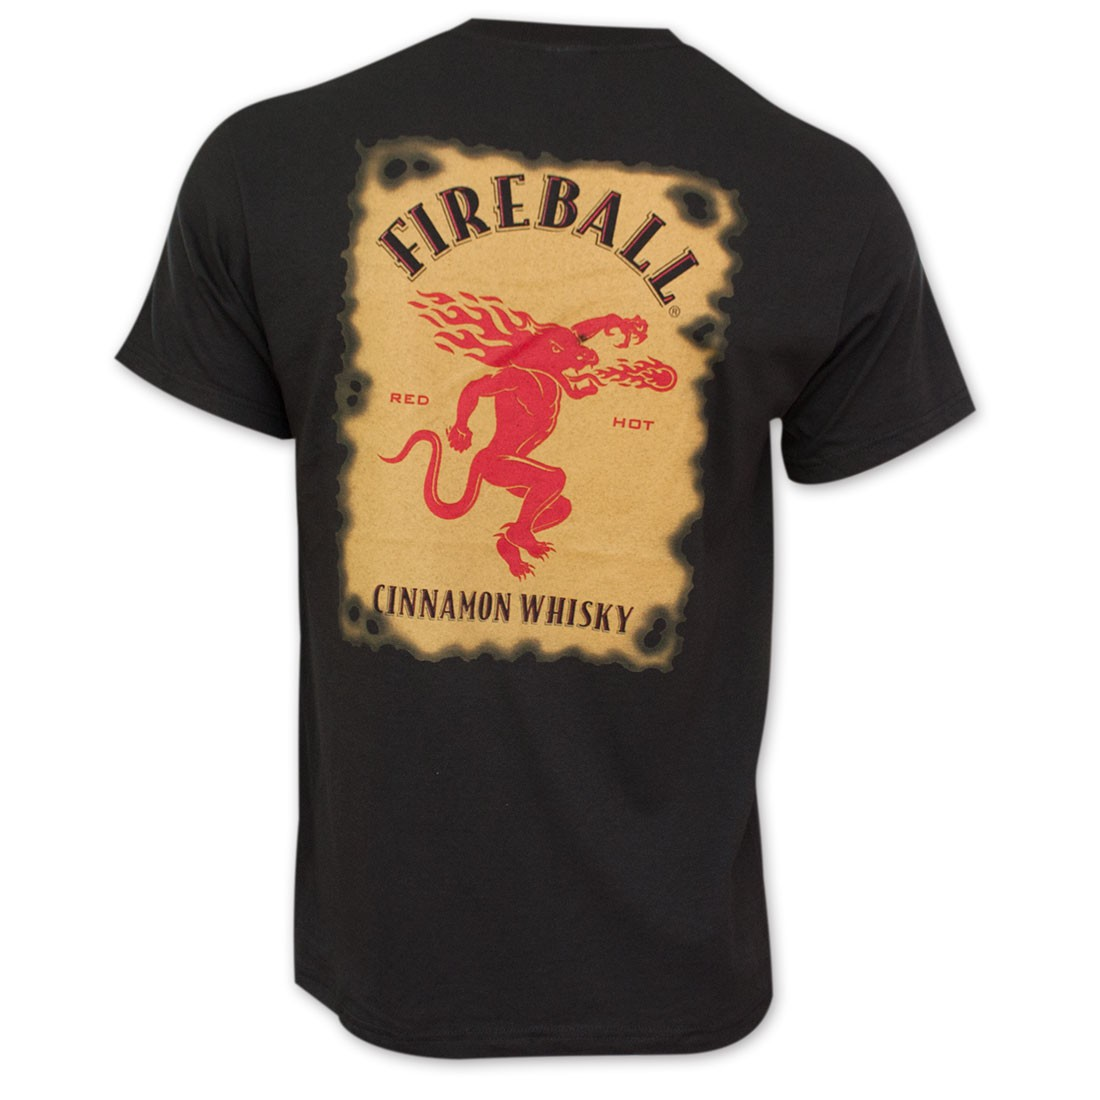 Fireball Cinnamon Whisky Bottle Label T-Shirt